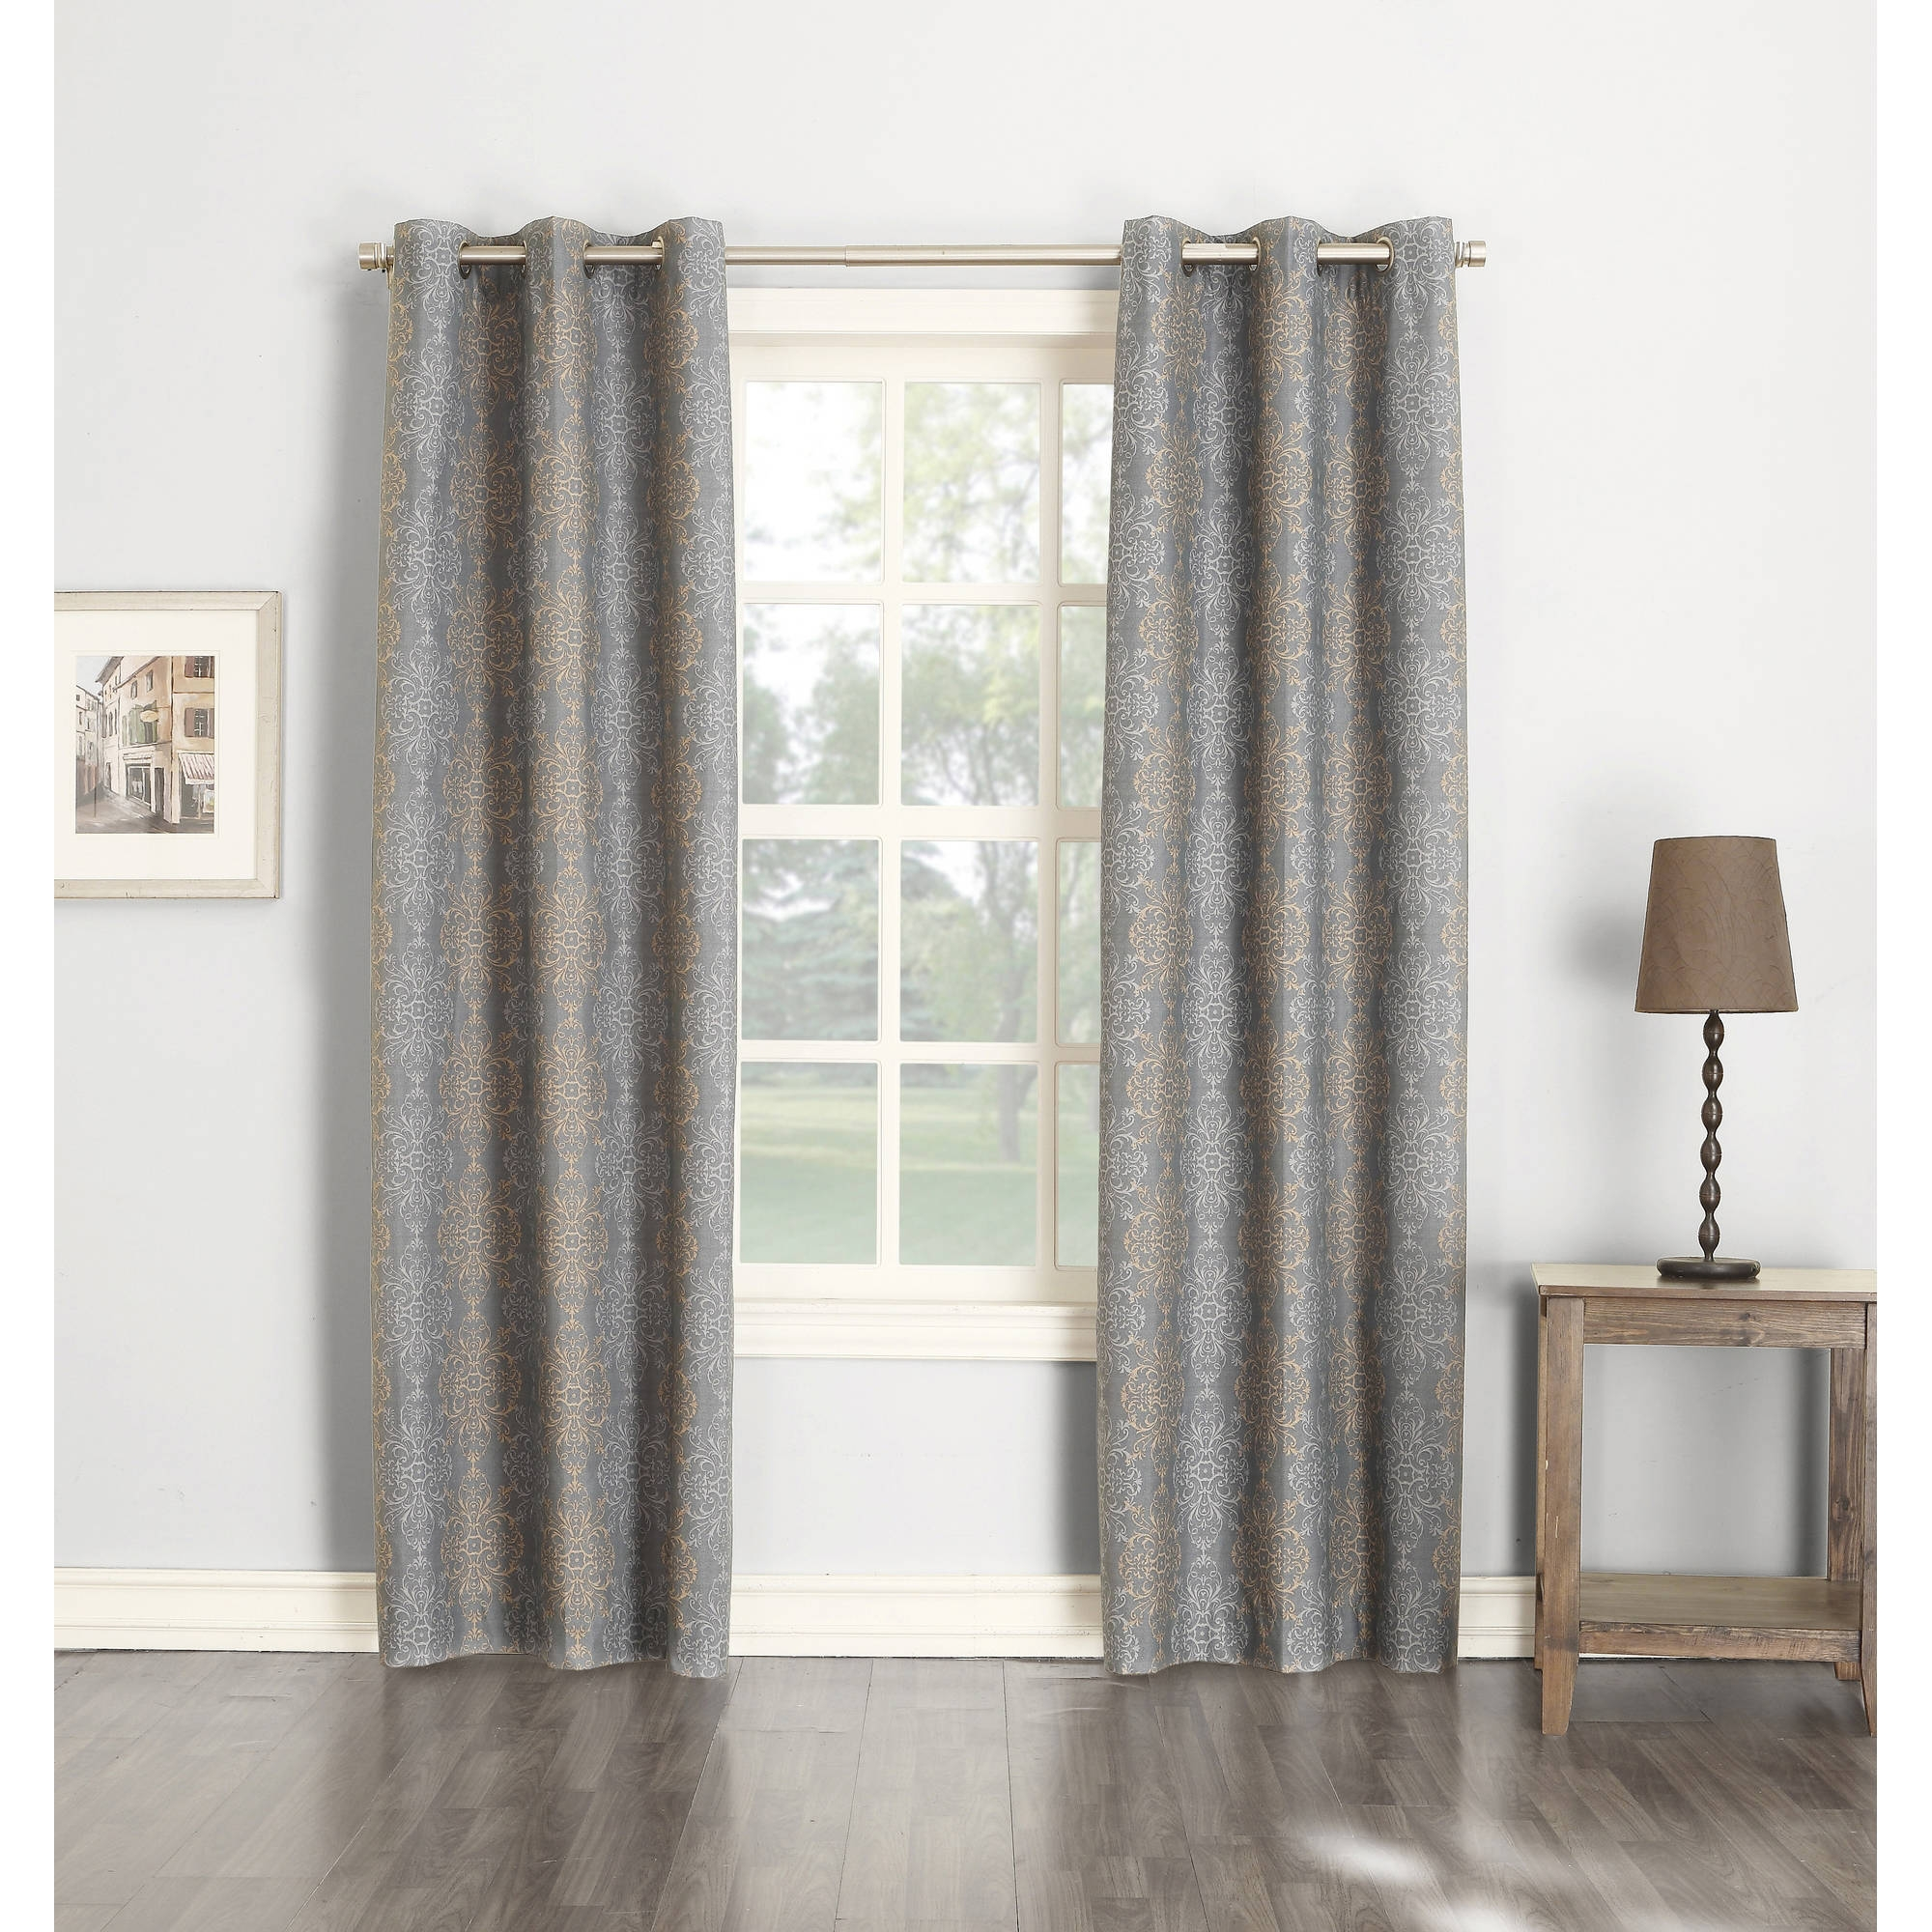 Walmart Thermal Curtains Lined Thermal Curtains Curtain Ideas